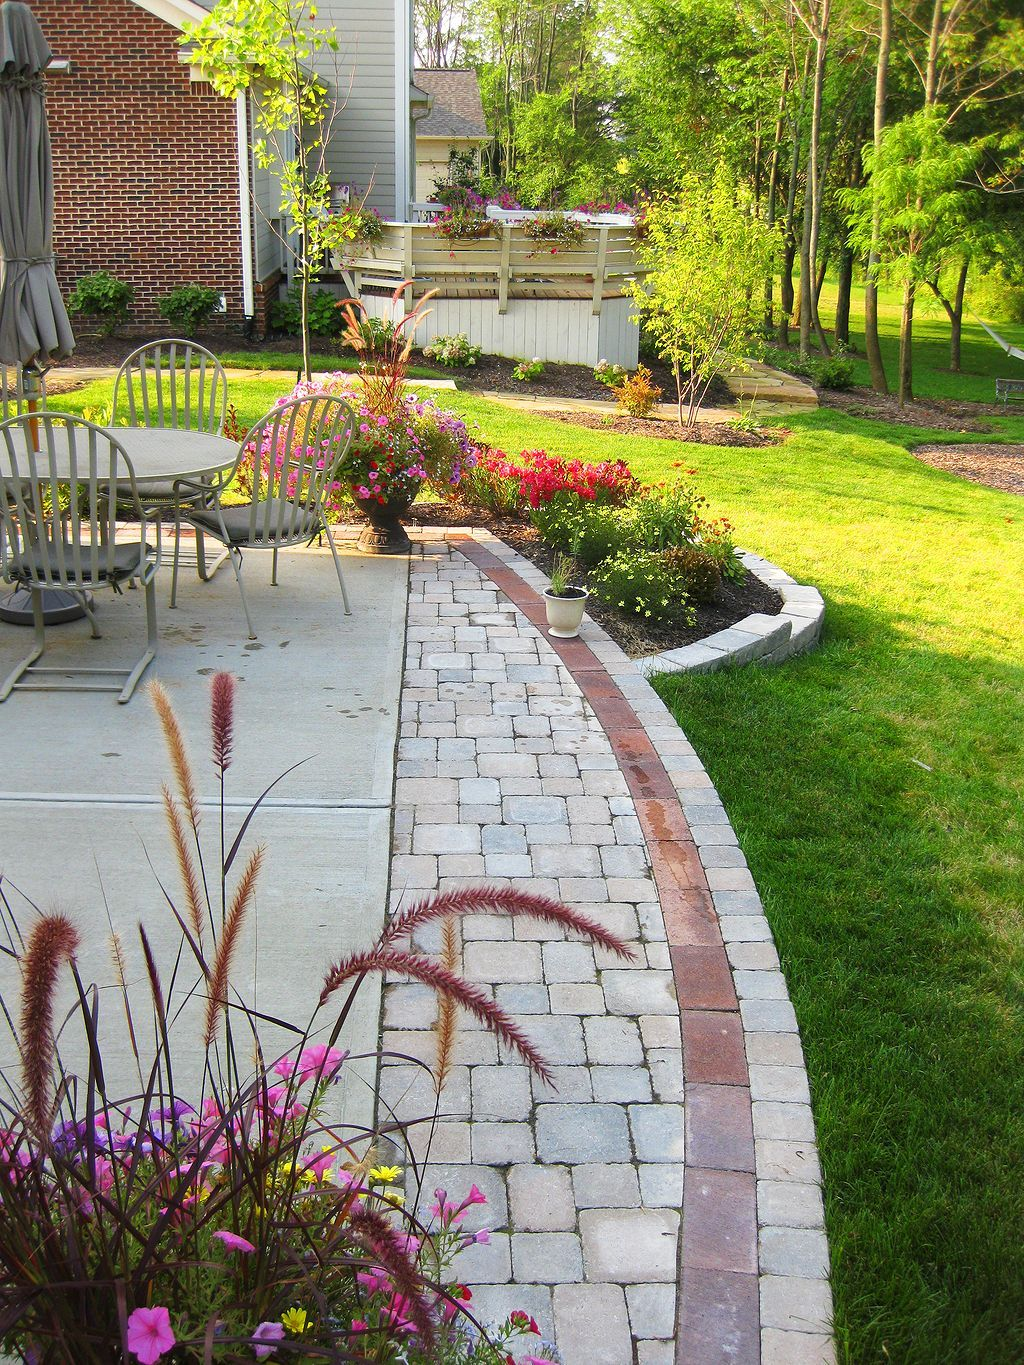 Nice 37 Cool Paver Patio Pattern Ideas For Your Garden Https Pinarchitecture Com 37 Cool Paver Pat Patio Landscaping Patio Pavers Design Patio Patterns Ideas